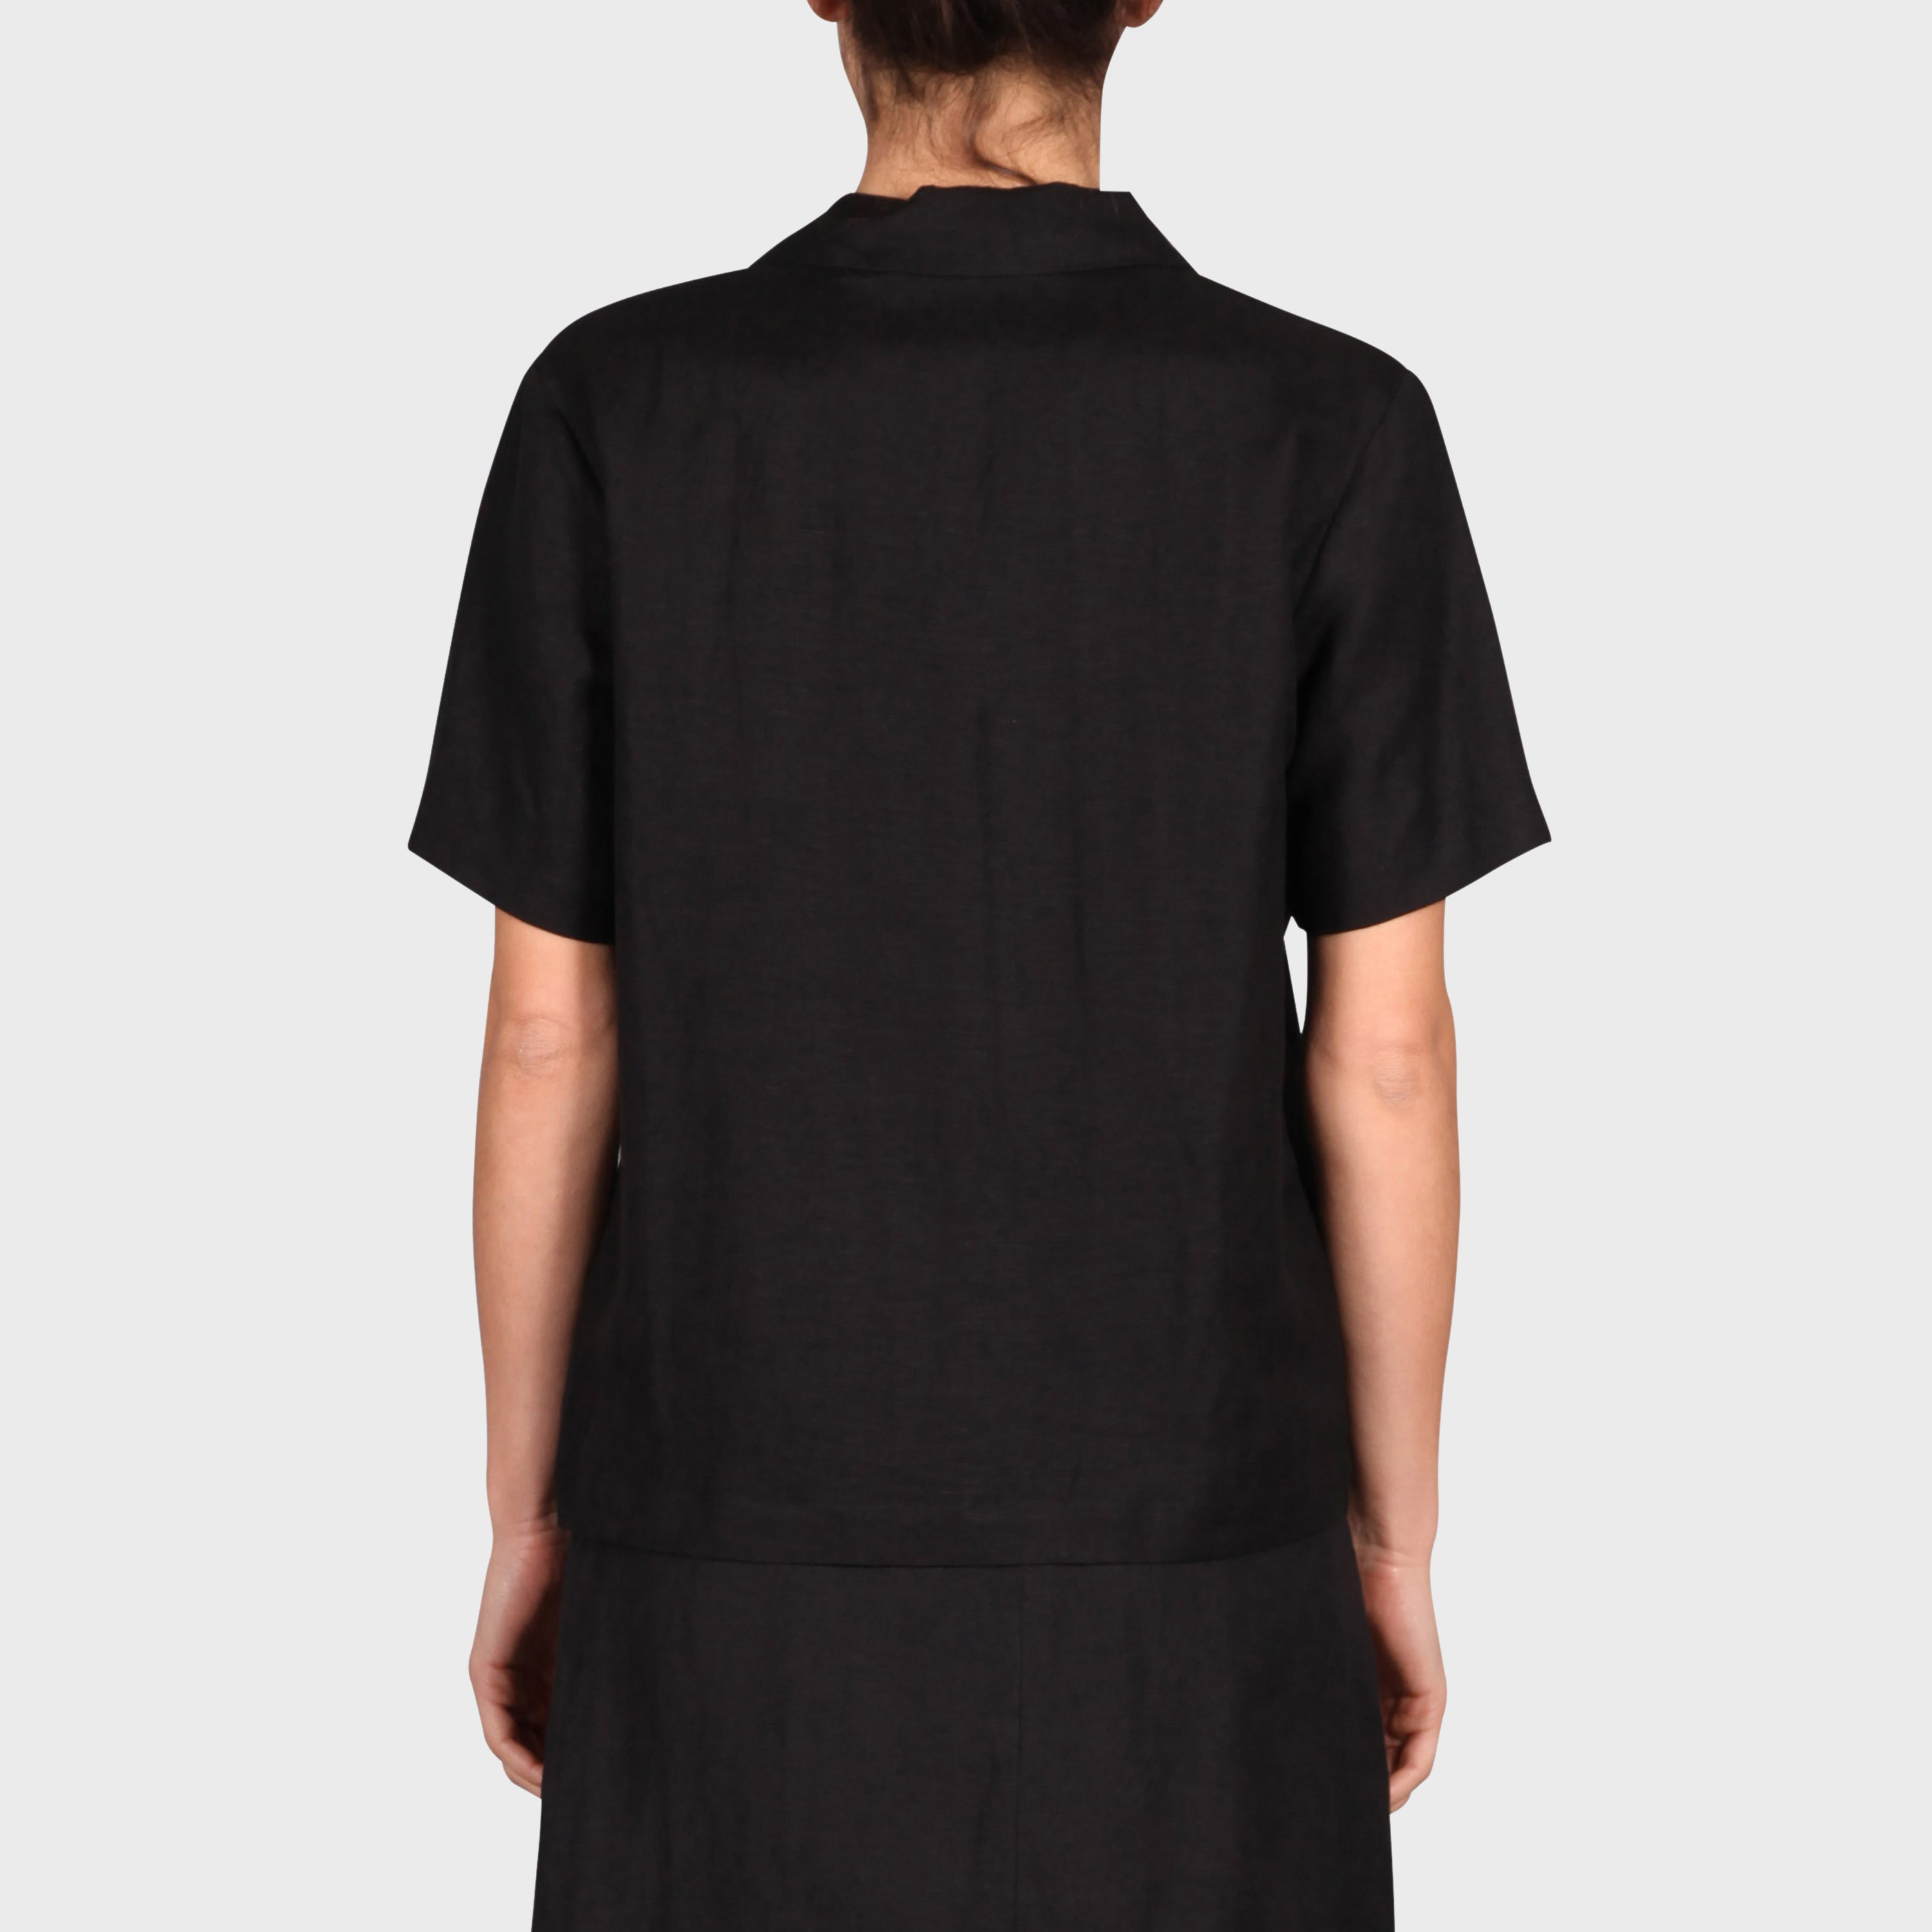 CINDY SHIRT / BLACK